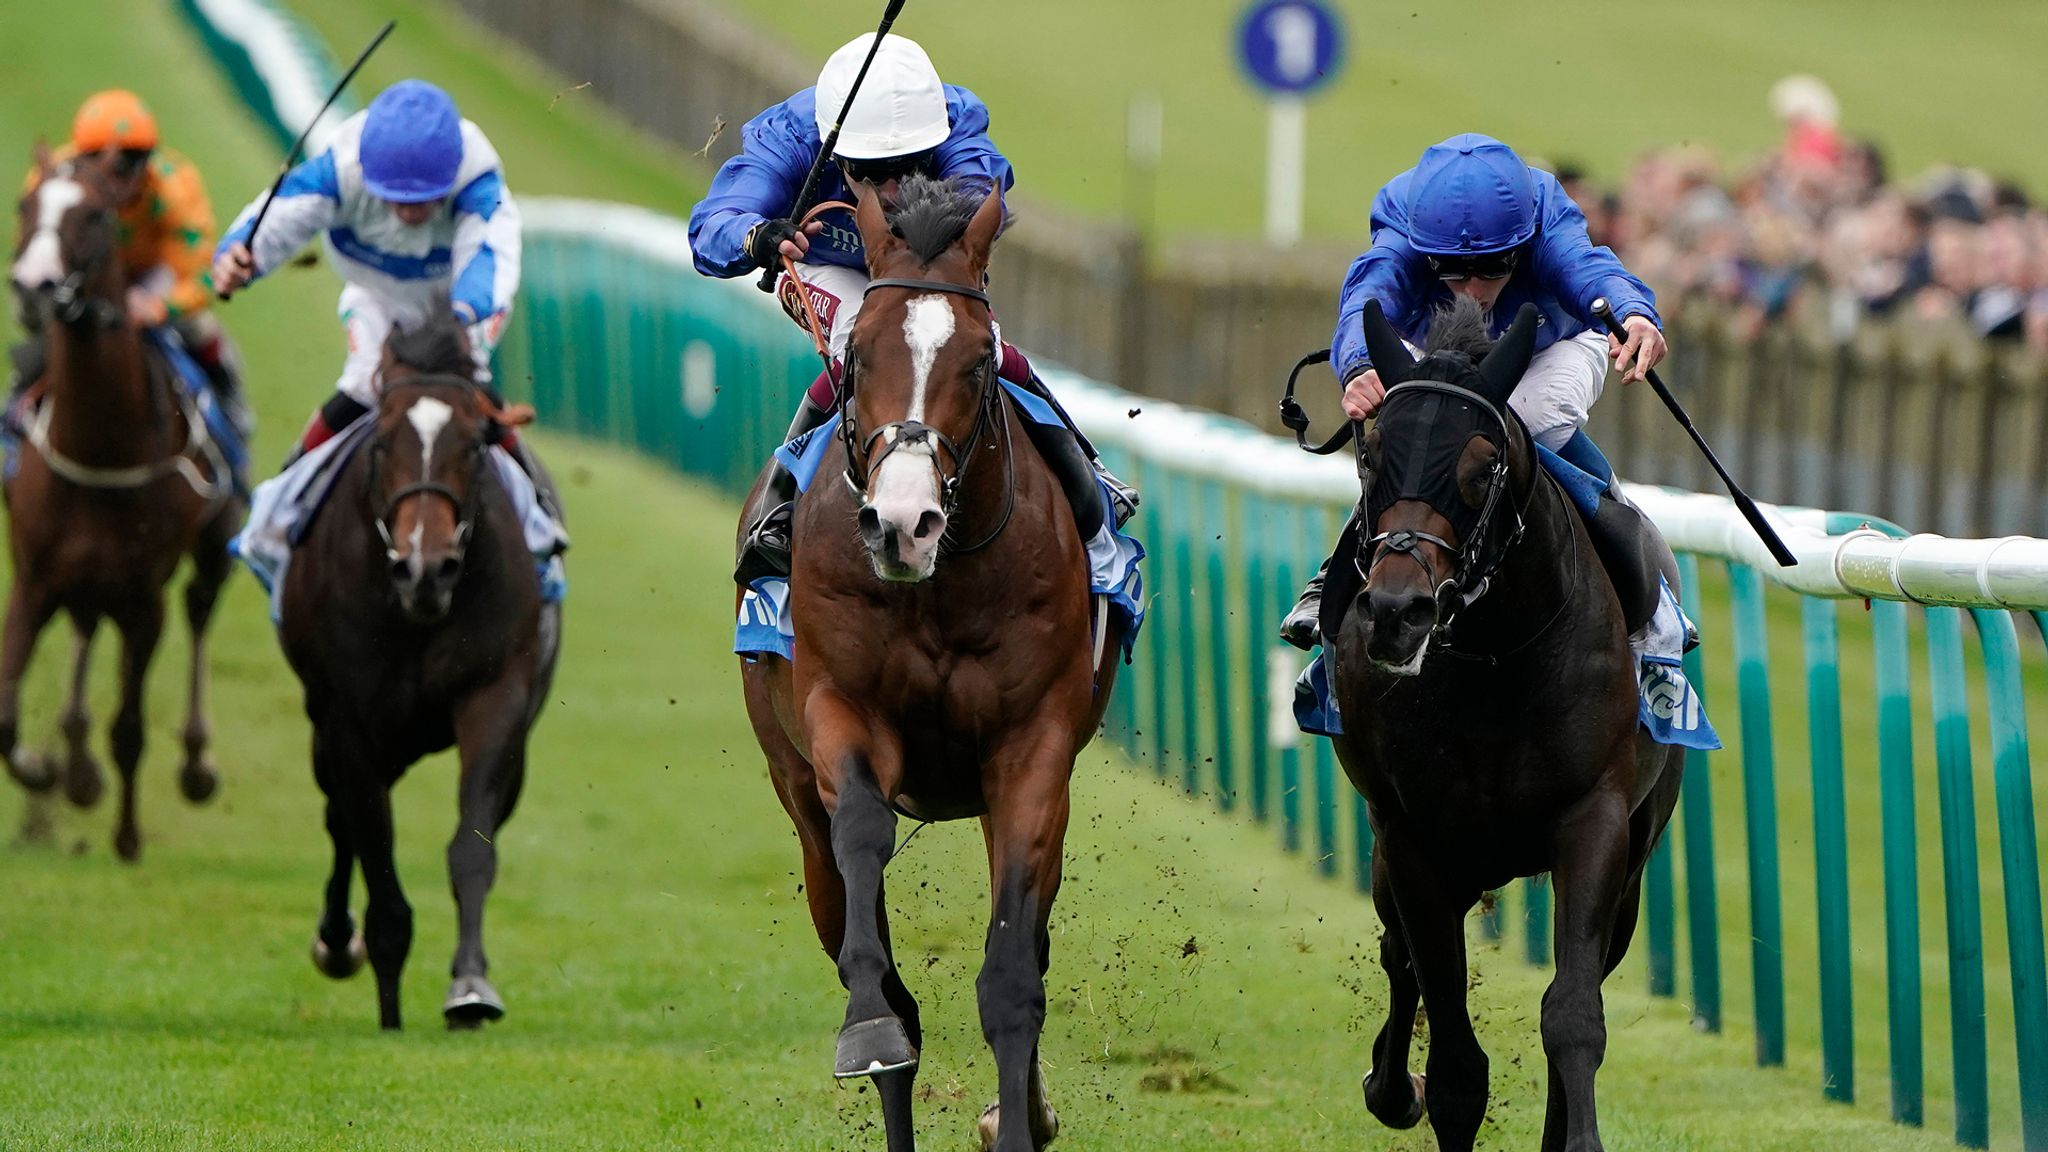 2000 guineas betting 2021 military